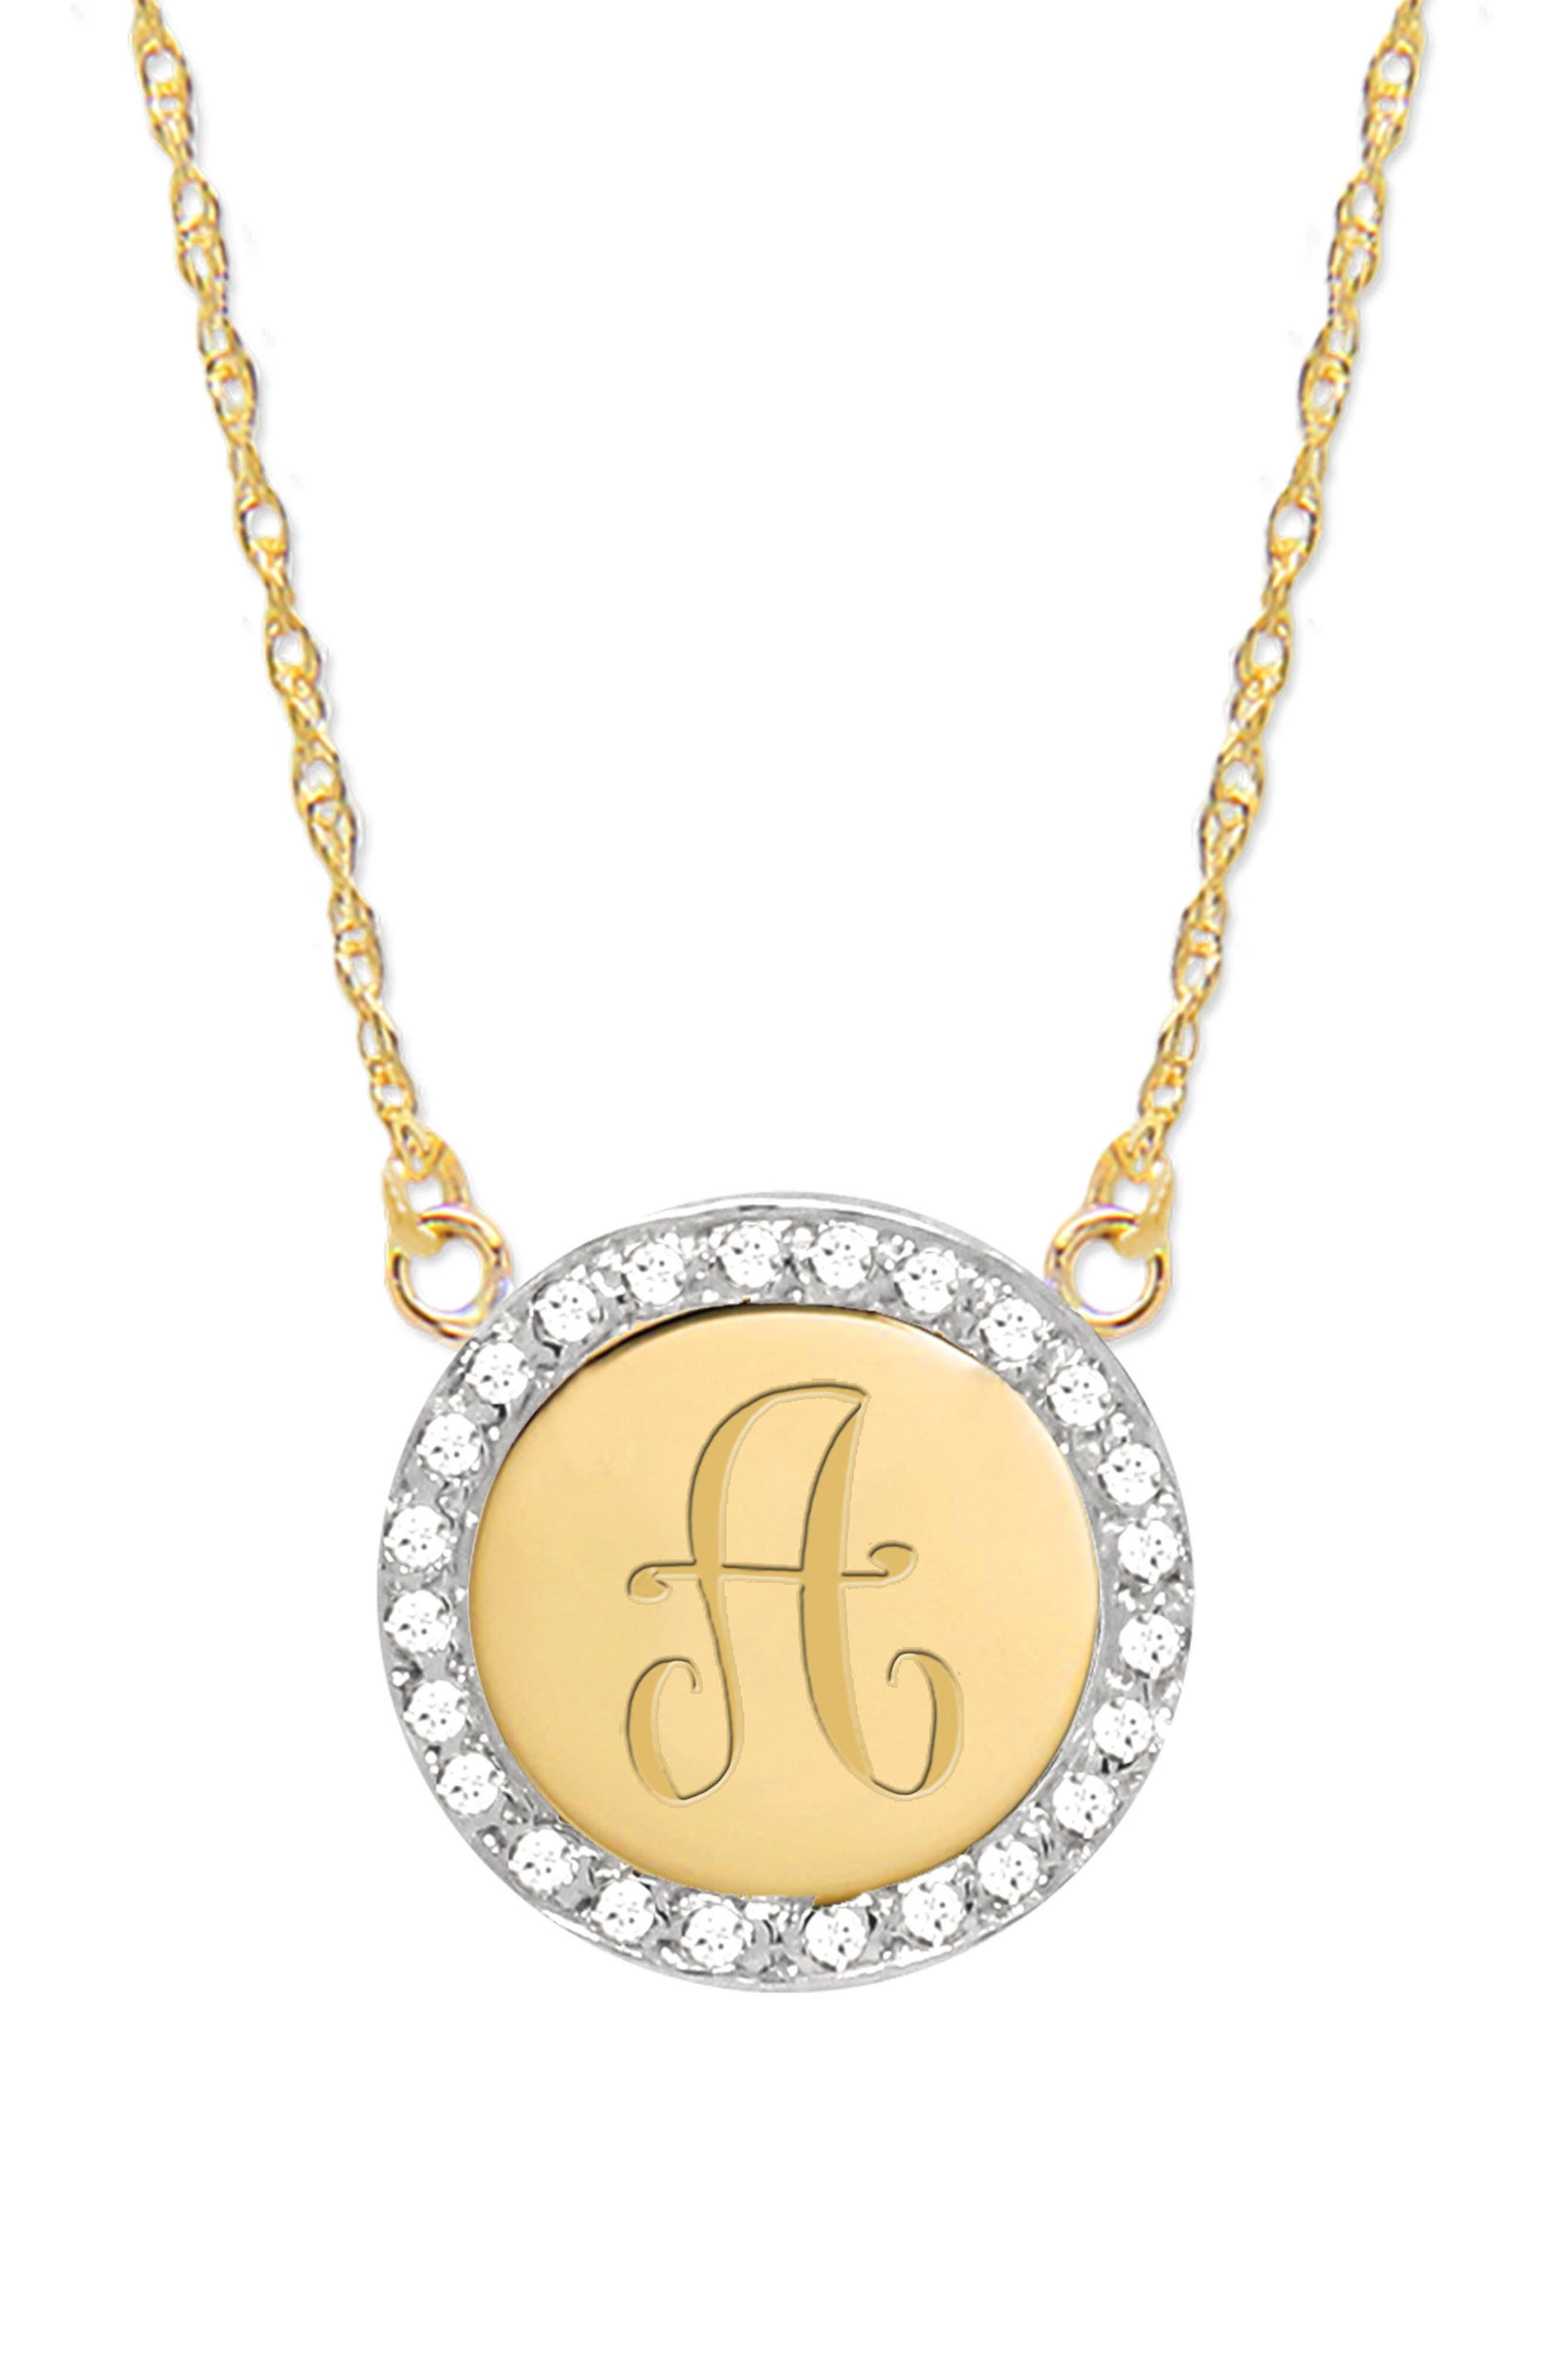 Main Image - Jane Basch Designs Diamond Halo Initial Pendant Necklace